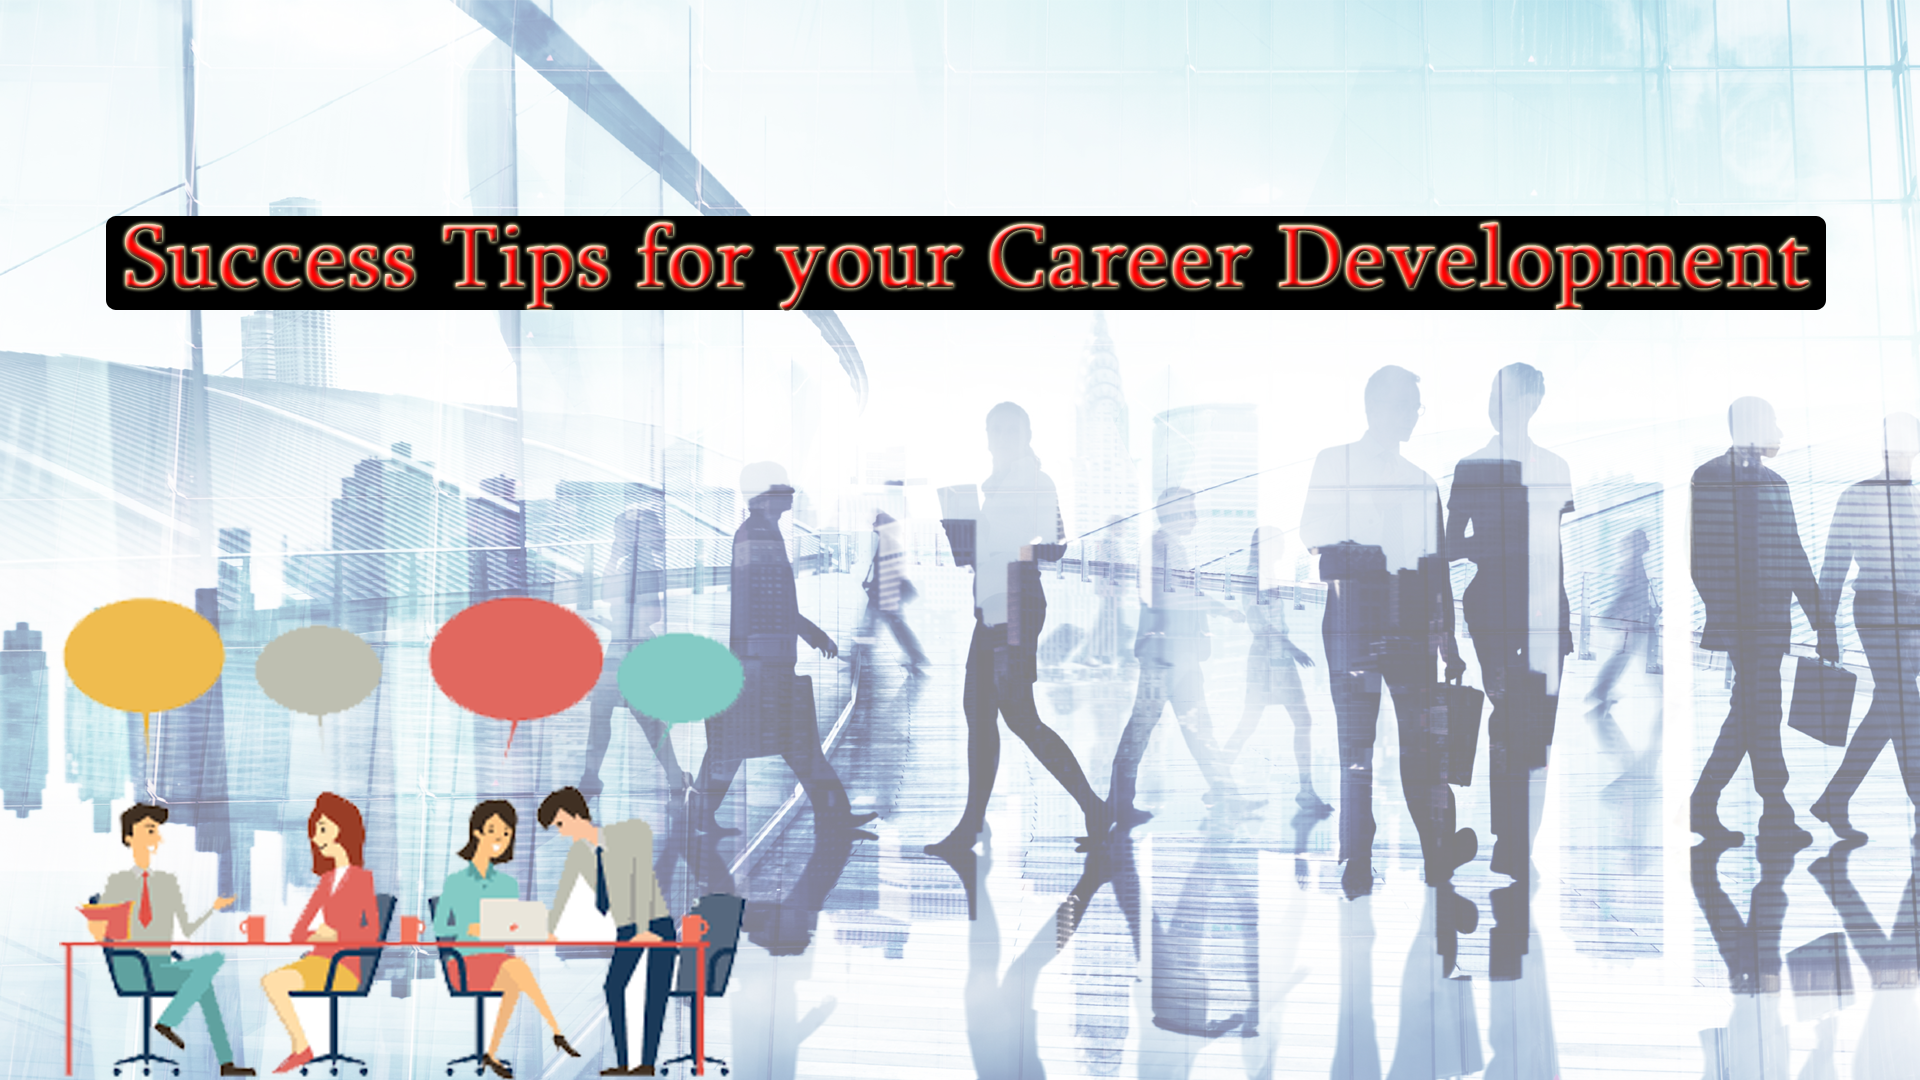 Success Tips for your Career Development